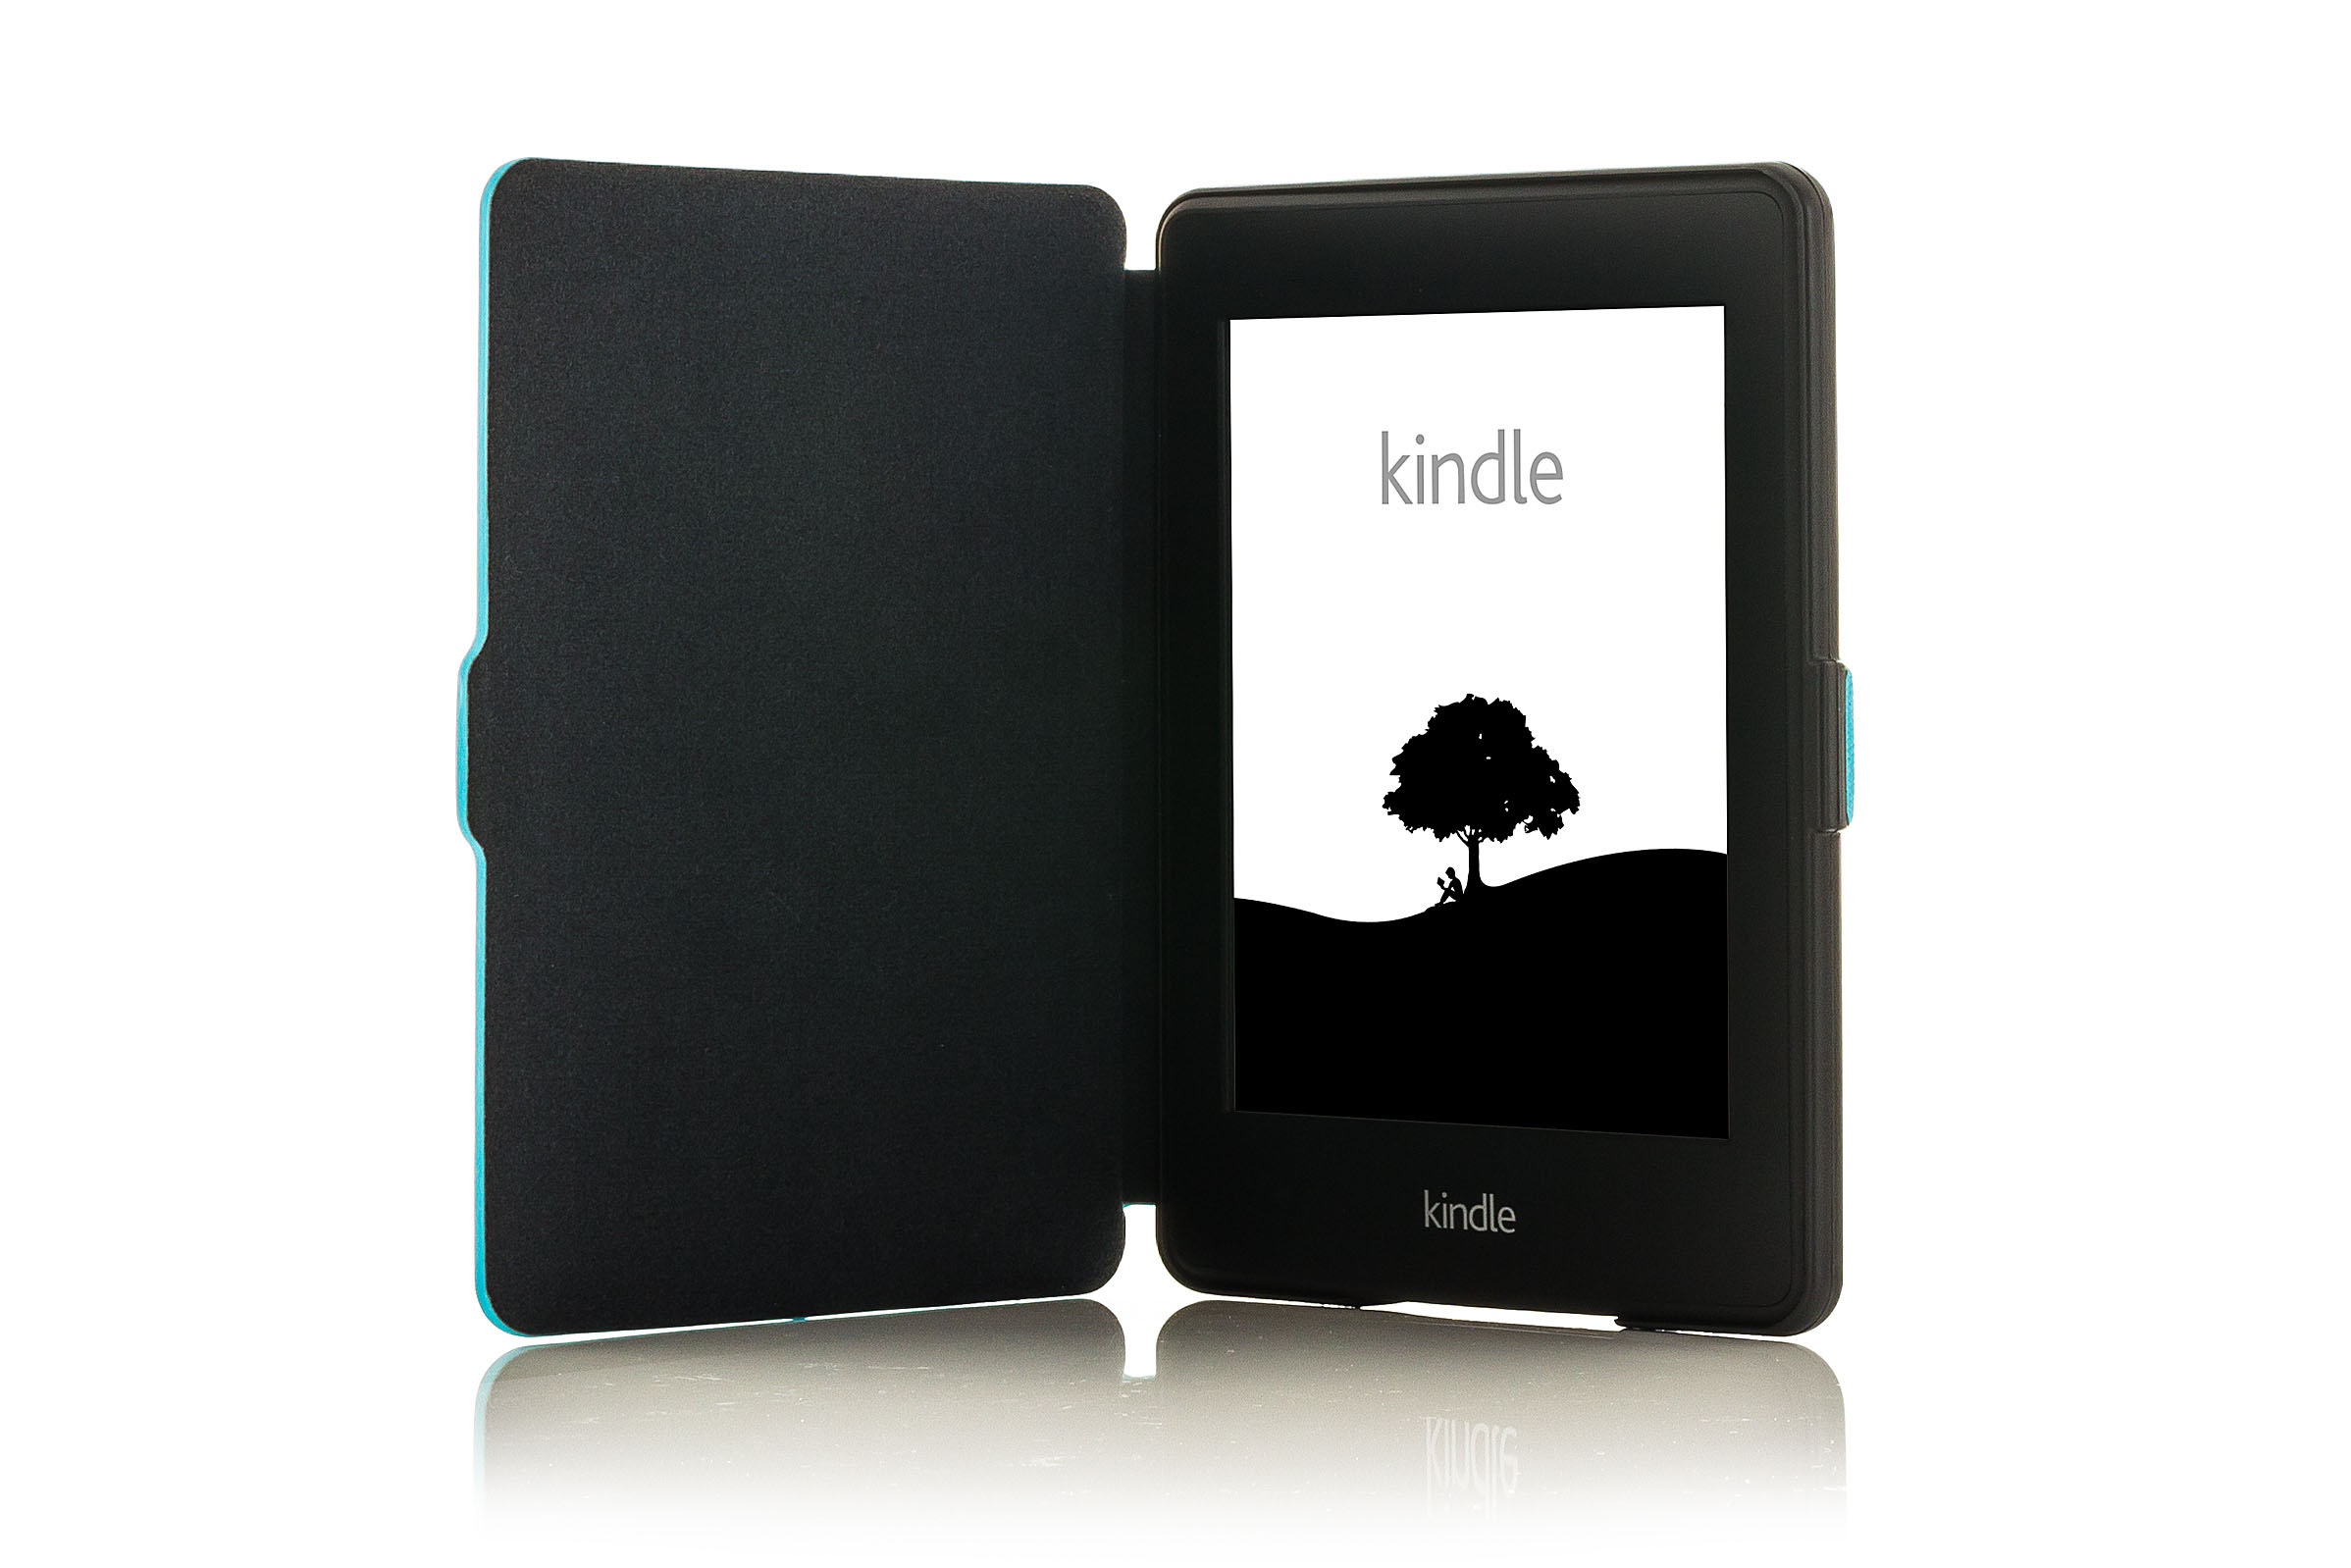 Kindle 2 Case: Leather Smart Shell Case Cover For Amazon Kindle